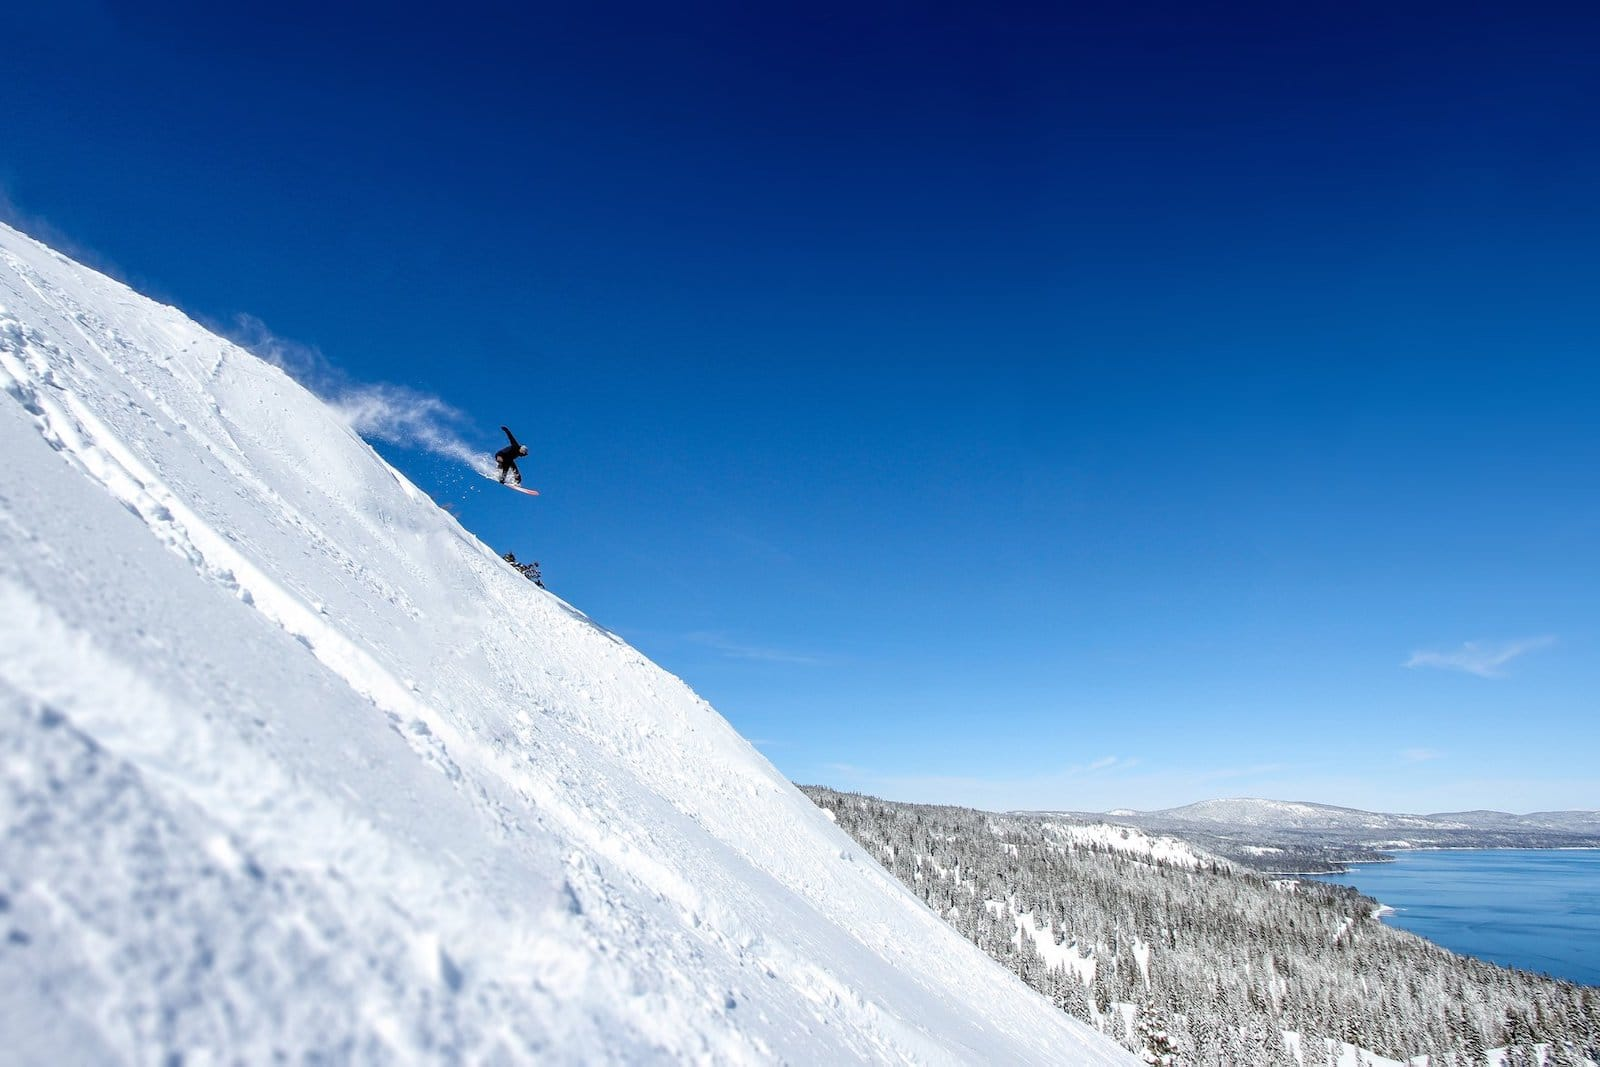 Image of a snowboarder jumping of the slopes at Homewood Mountain Resort in Califonia